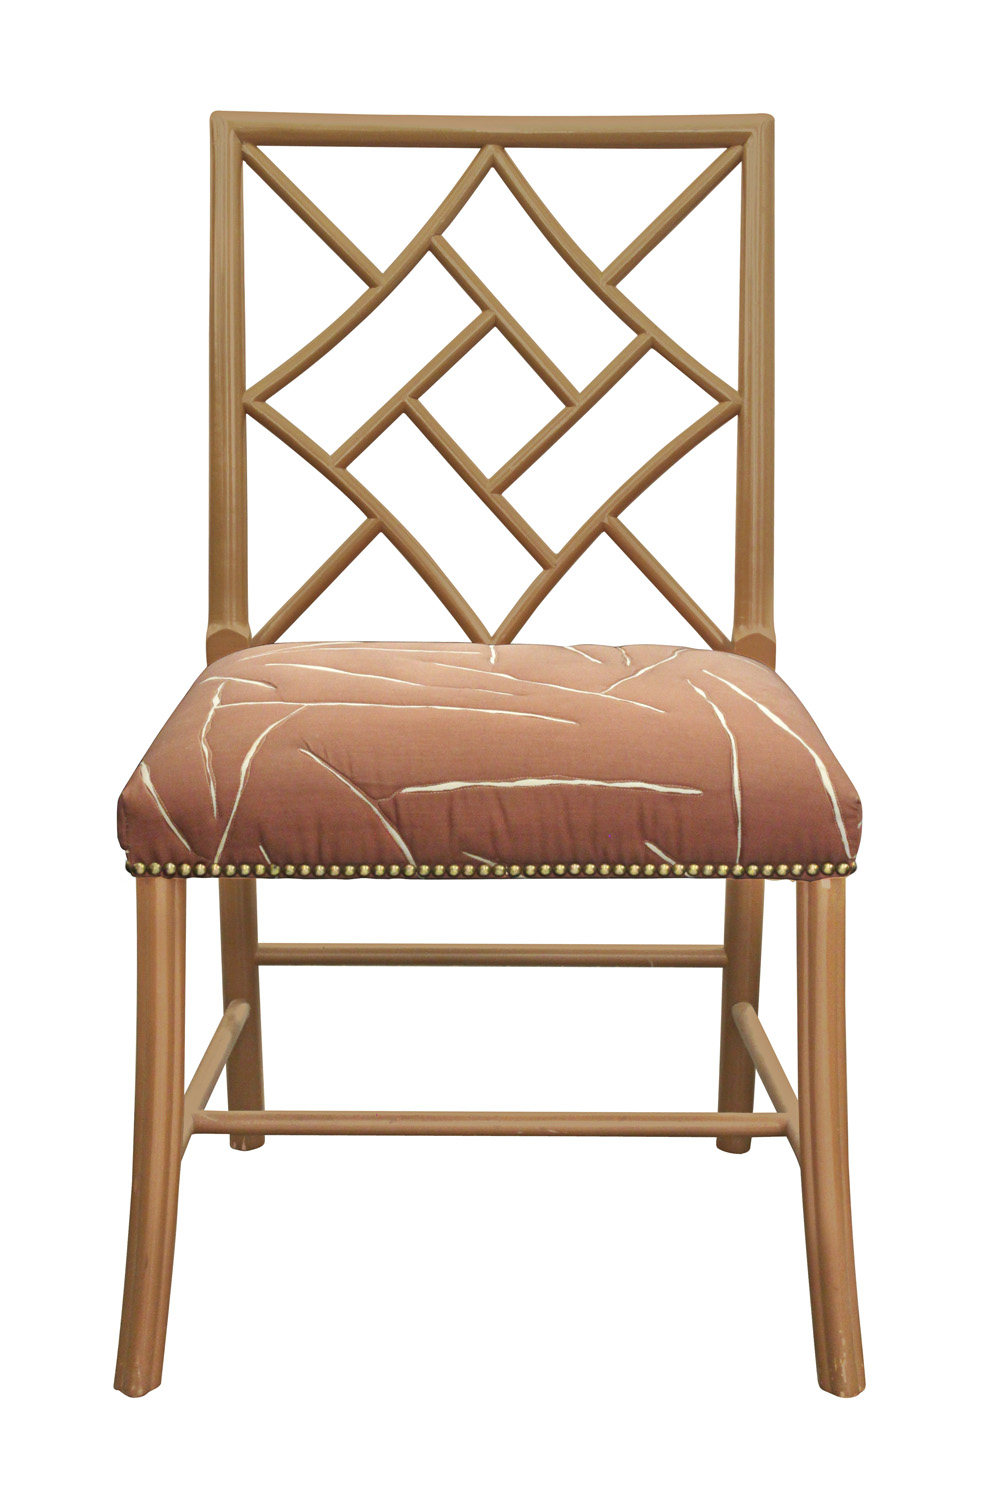 70s 180 Haines mnnr set8 brown lqr diningchairs165 detail3 hires.jpg